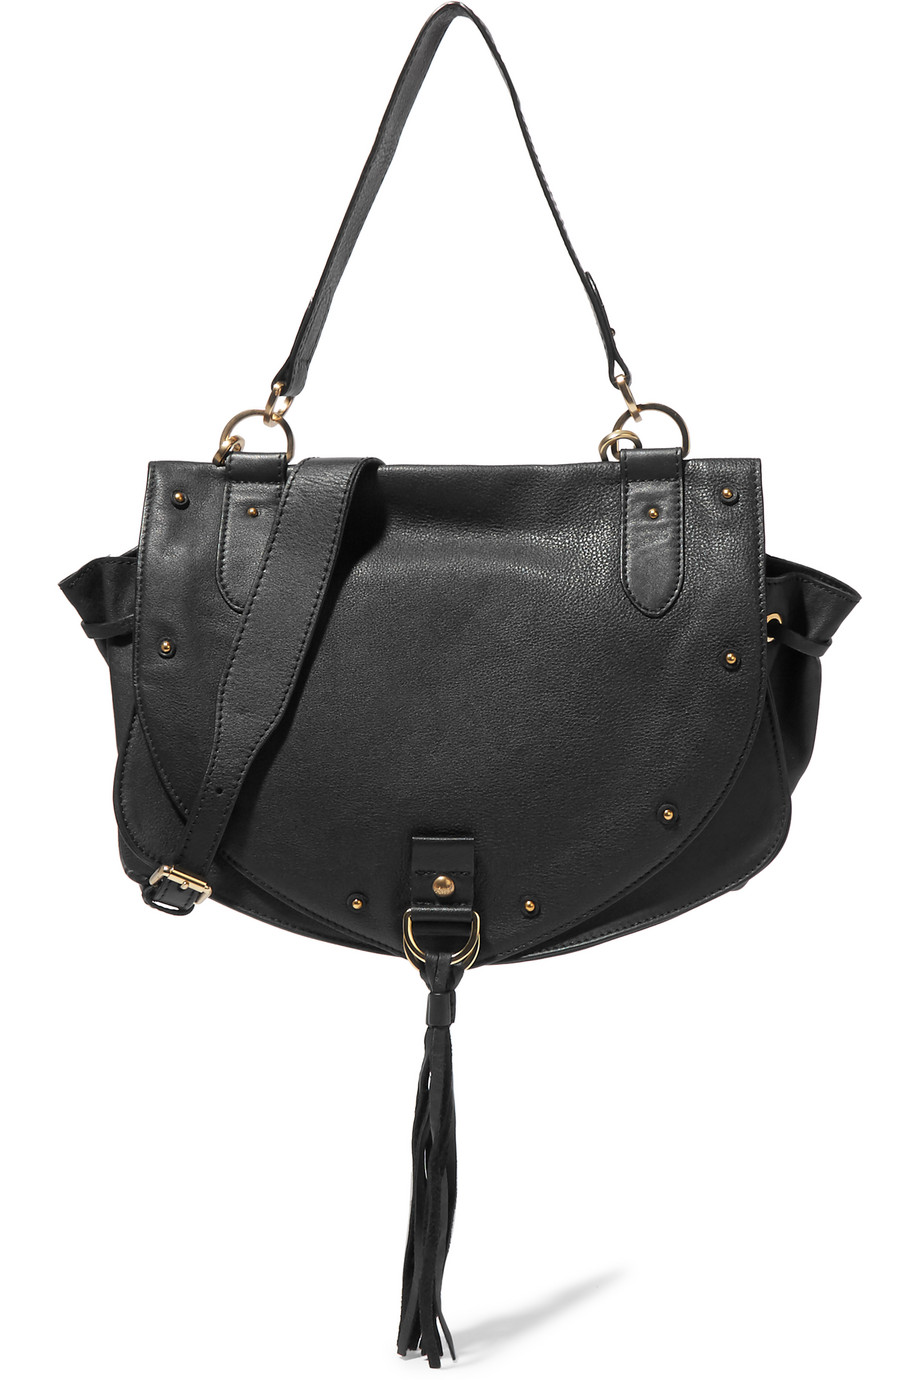 See by Chloé Collins Medium Textured-Leather Shoulder Bag, Black, Women's